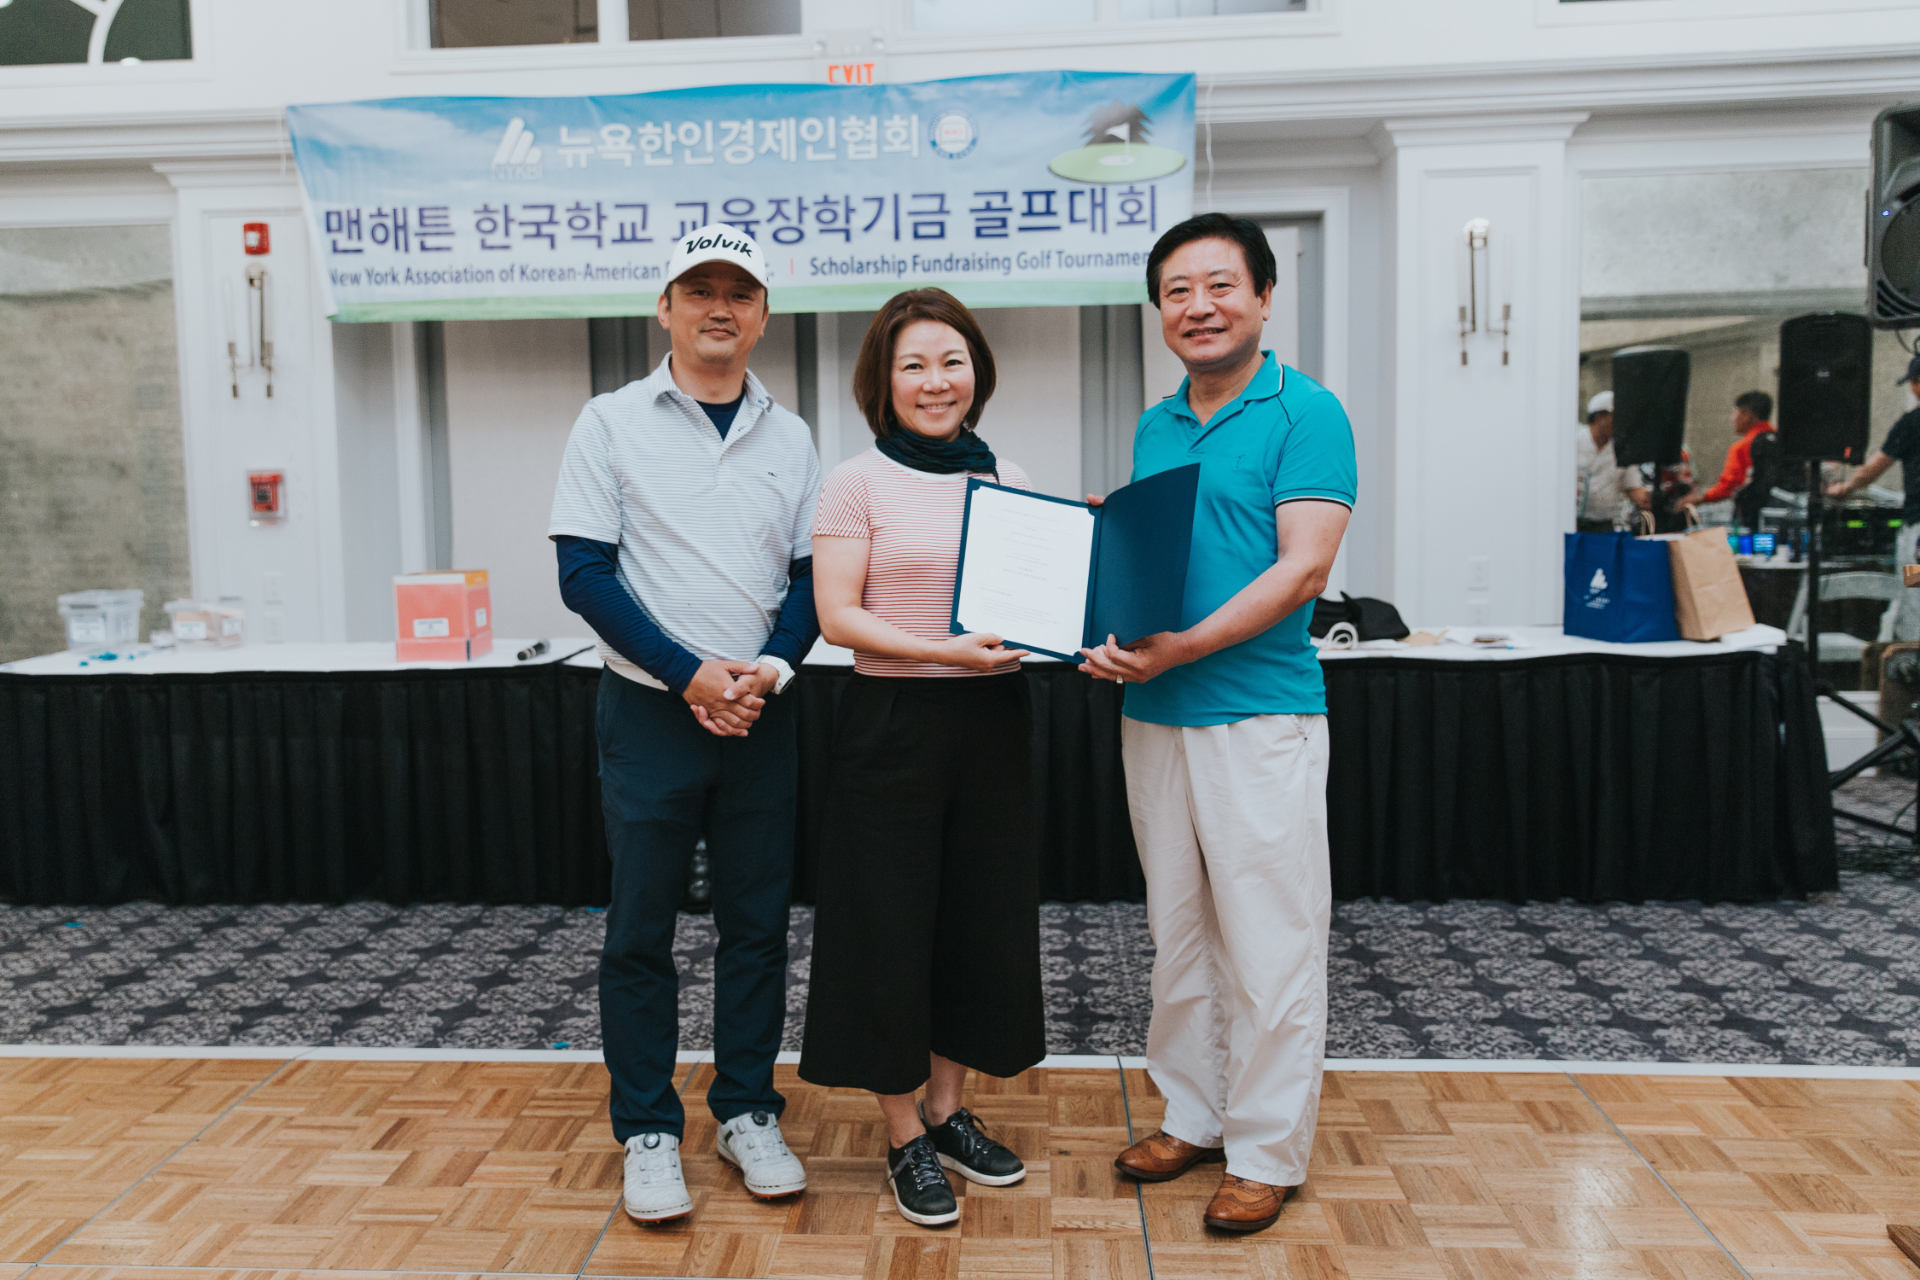 https://nykbi.com/new/wp-content/uploads/2019/07/190619-Scholarship-Fundraising-Golf-Tournament-064.jpg